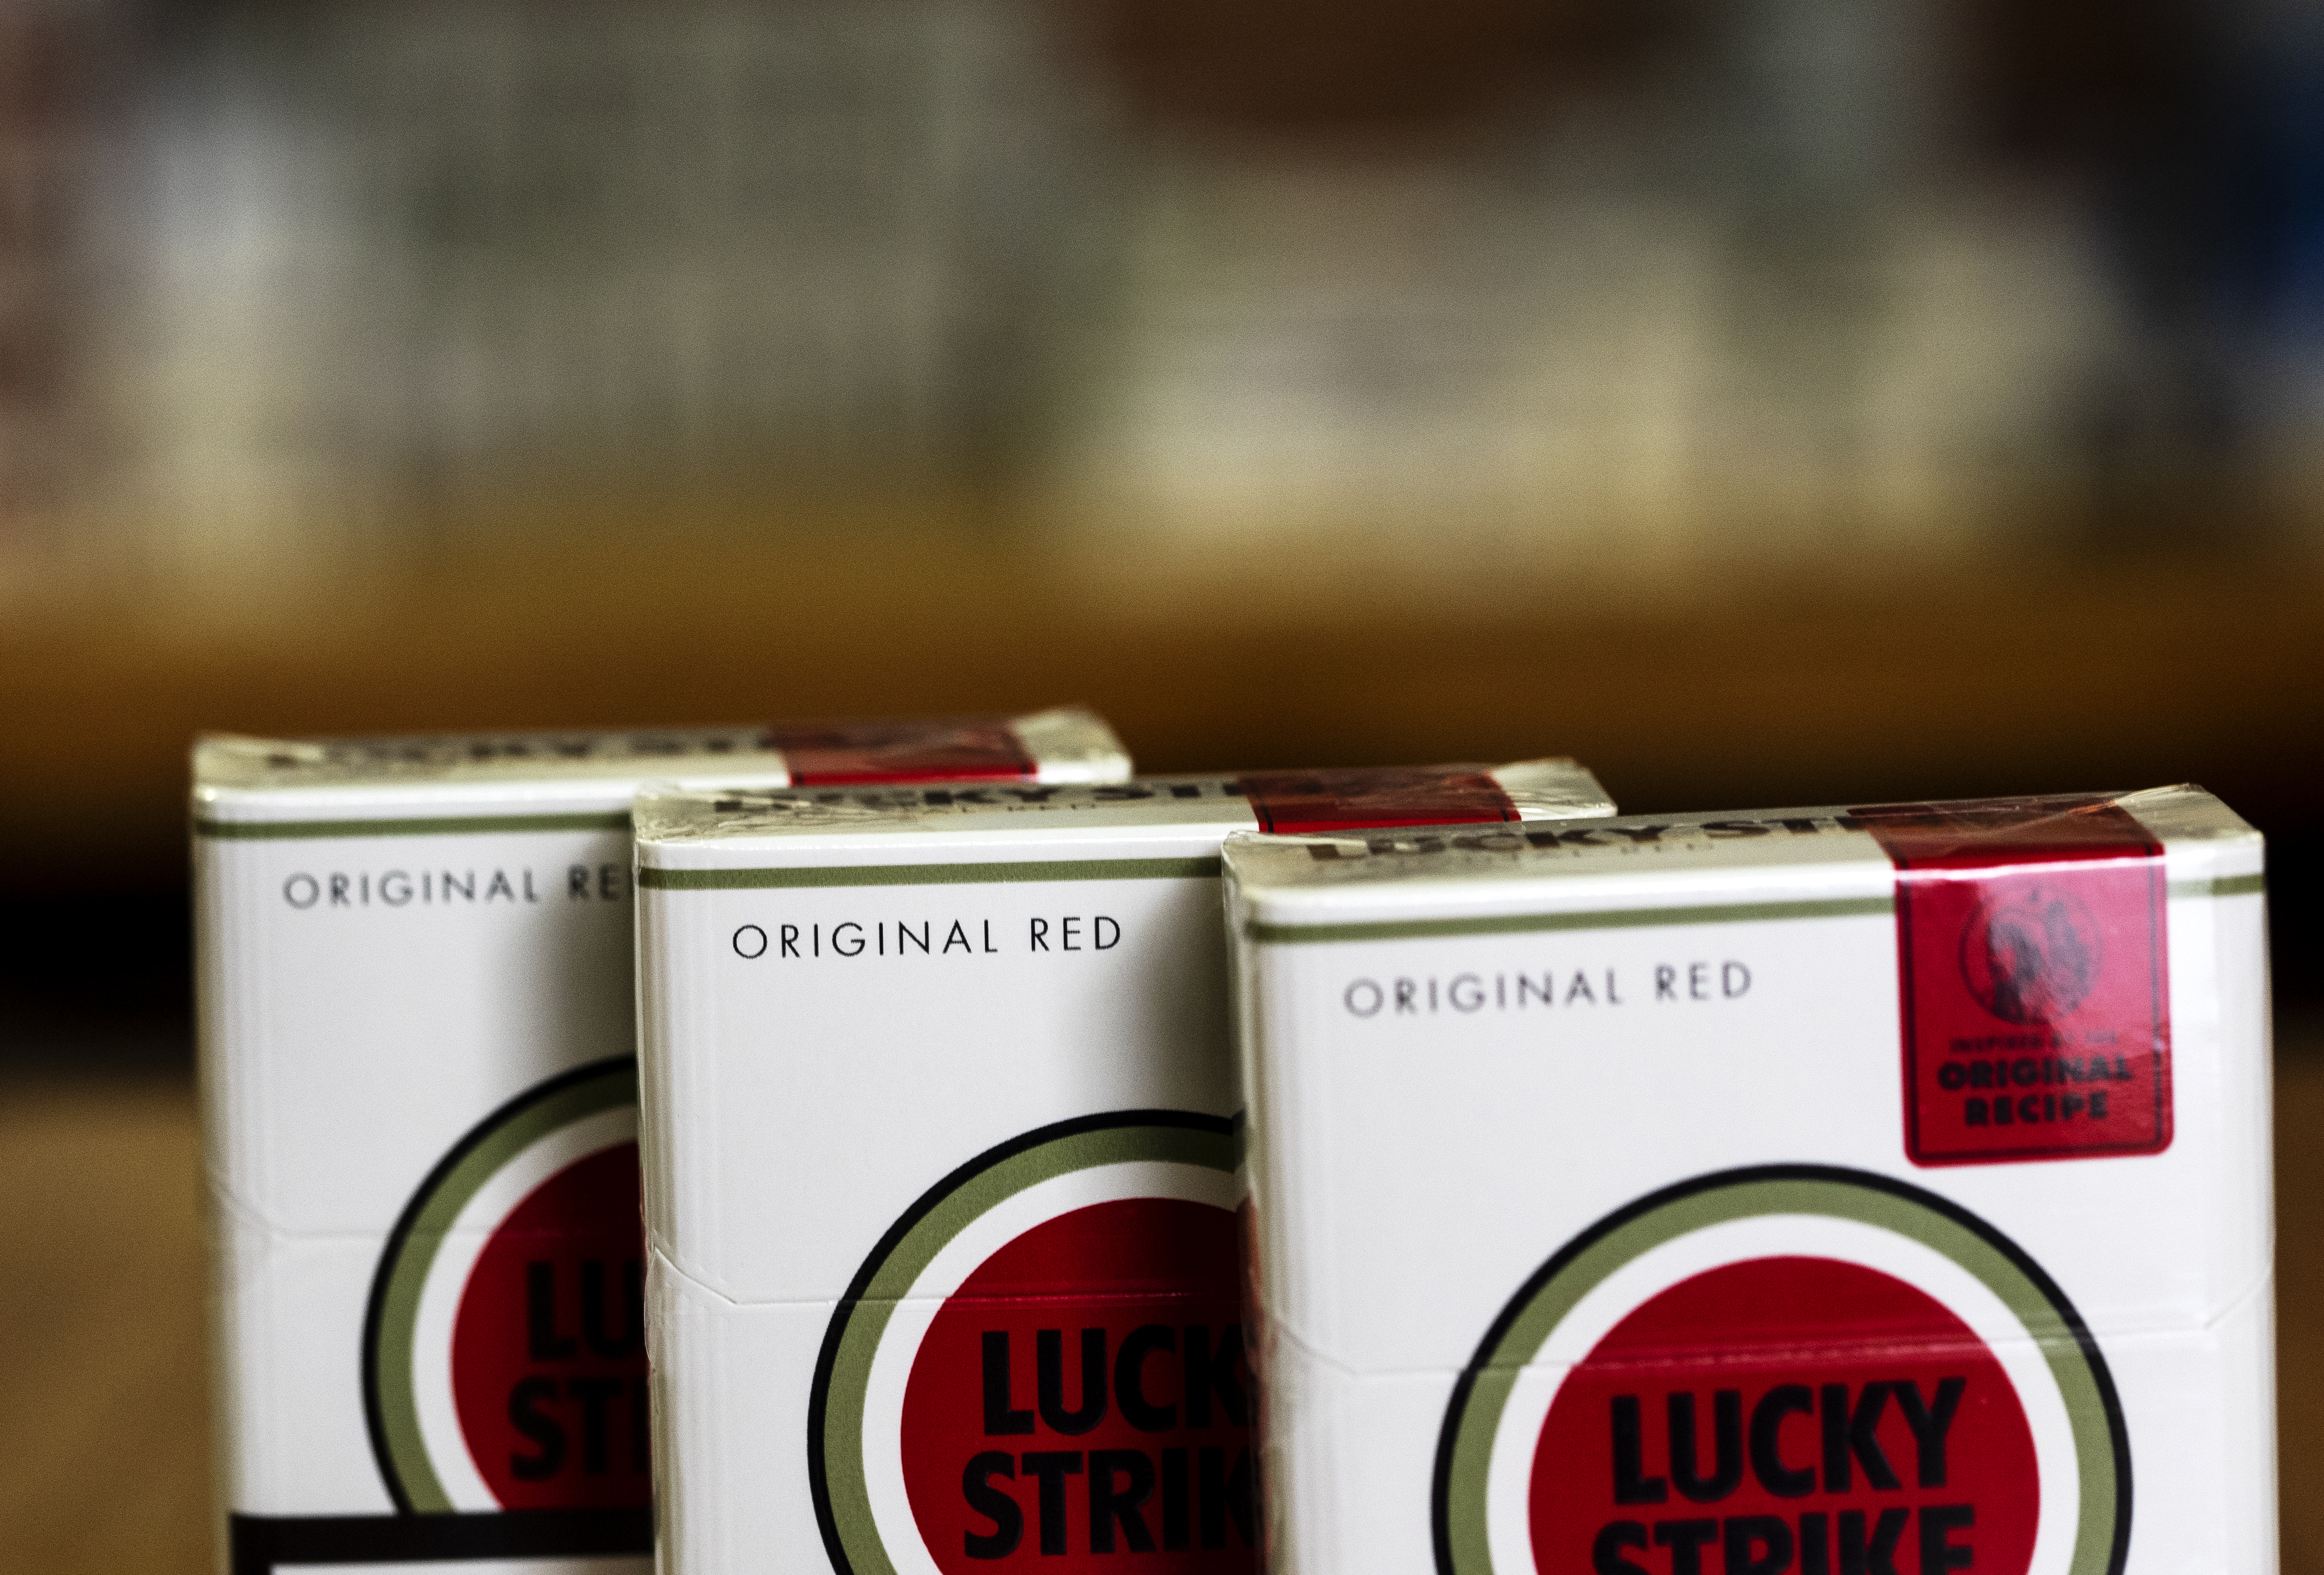 KIEV, UKRAINE - 2019/02/14: A pack of British American Tobacco Lucky Strike cigarettes seen in a Tobacco Store.